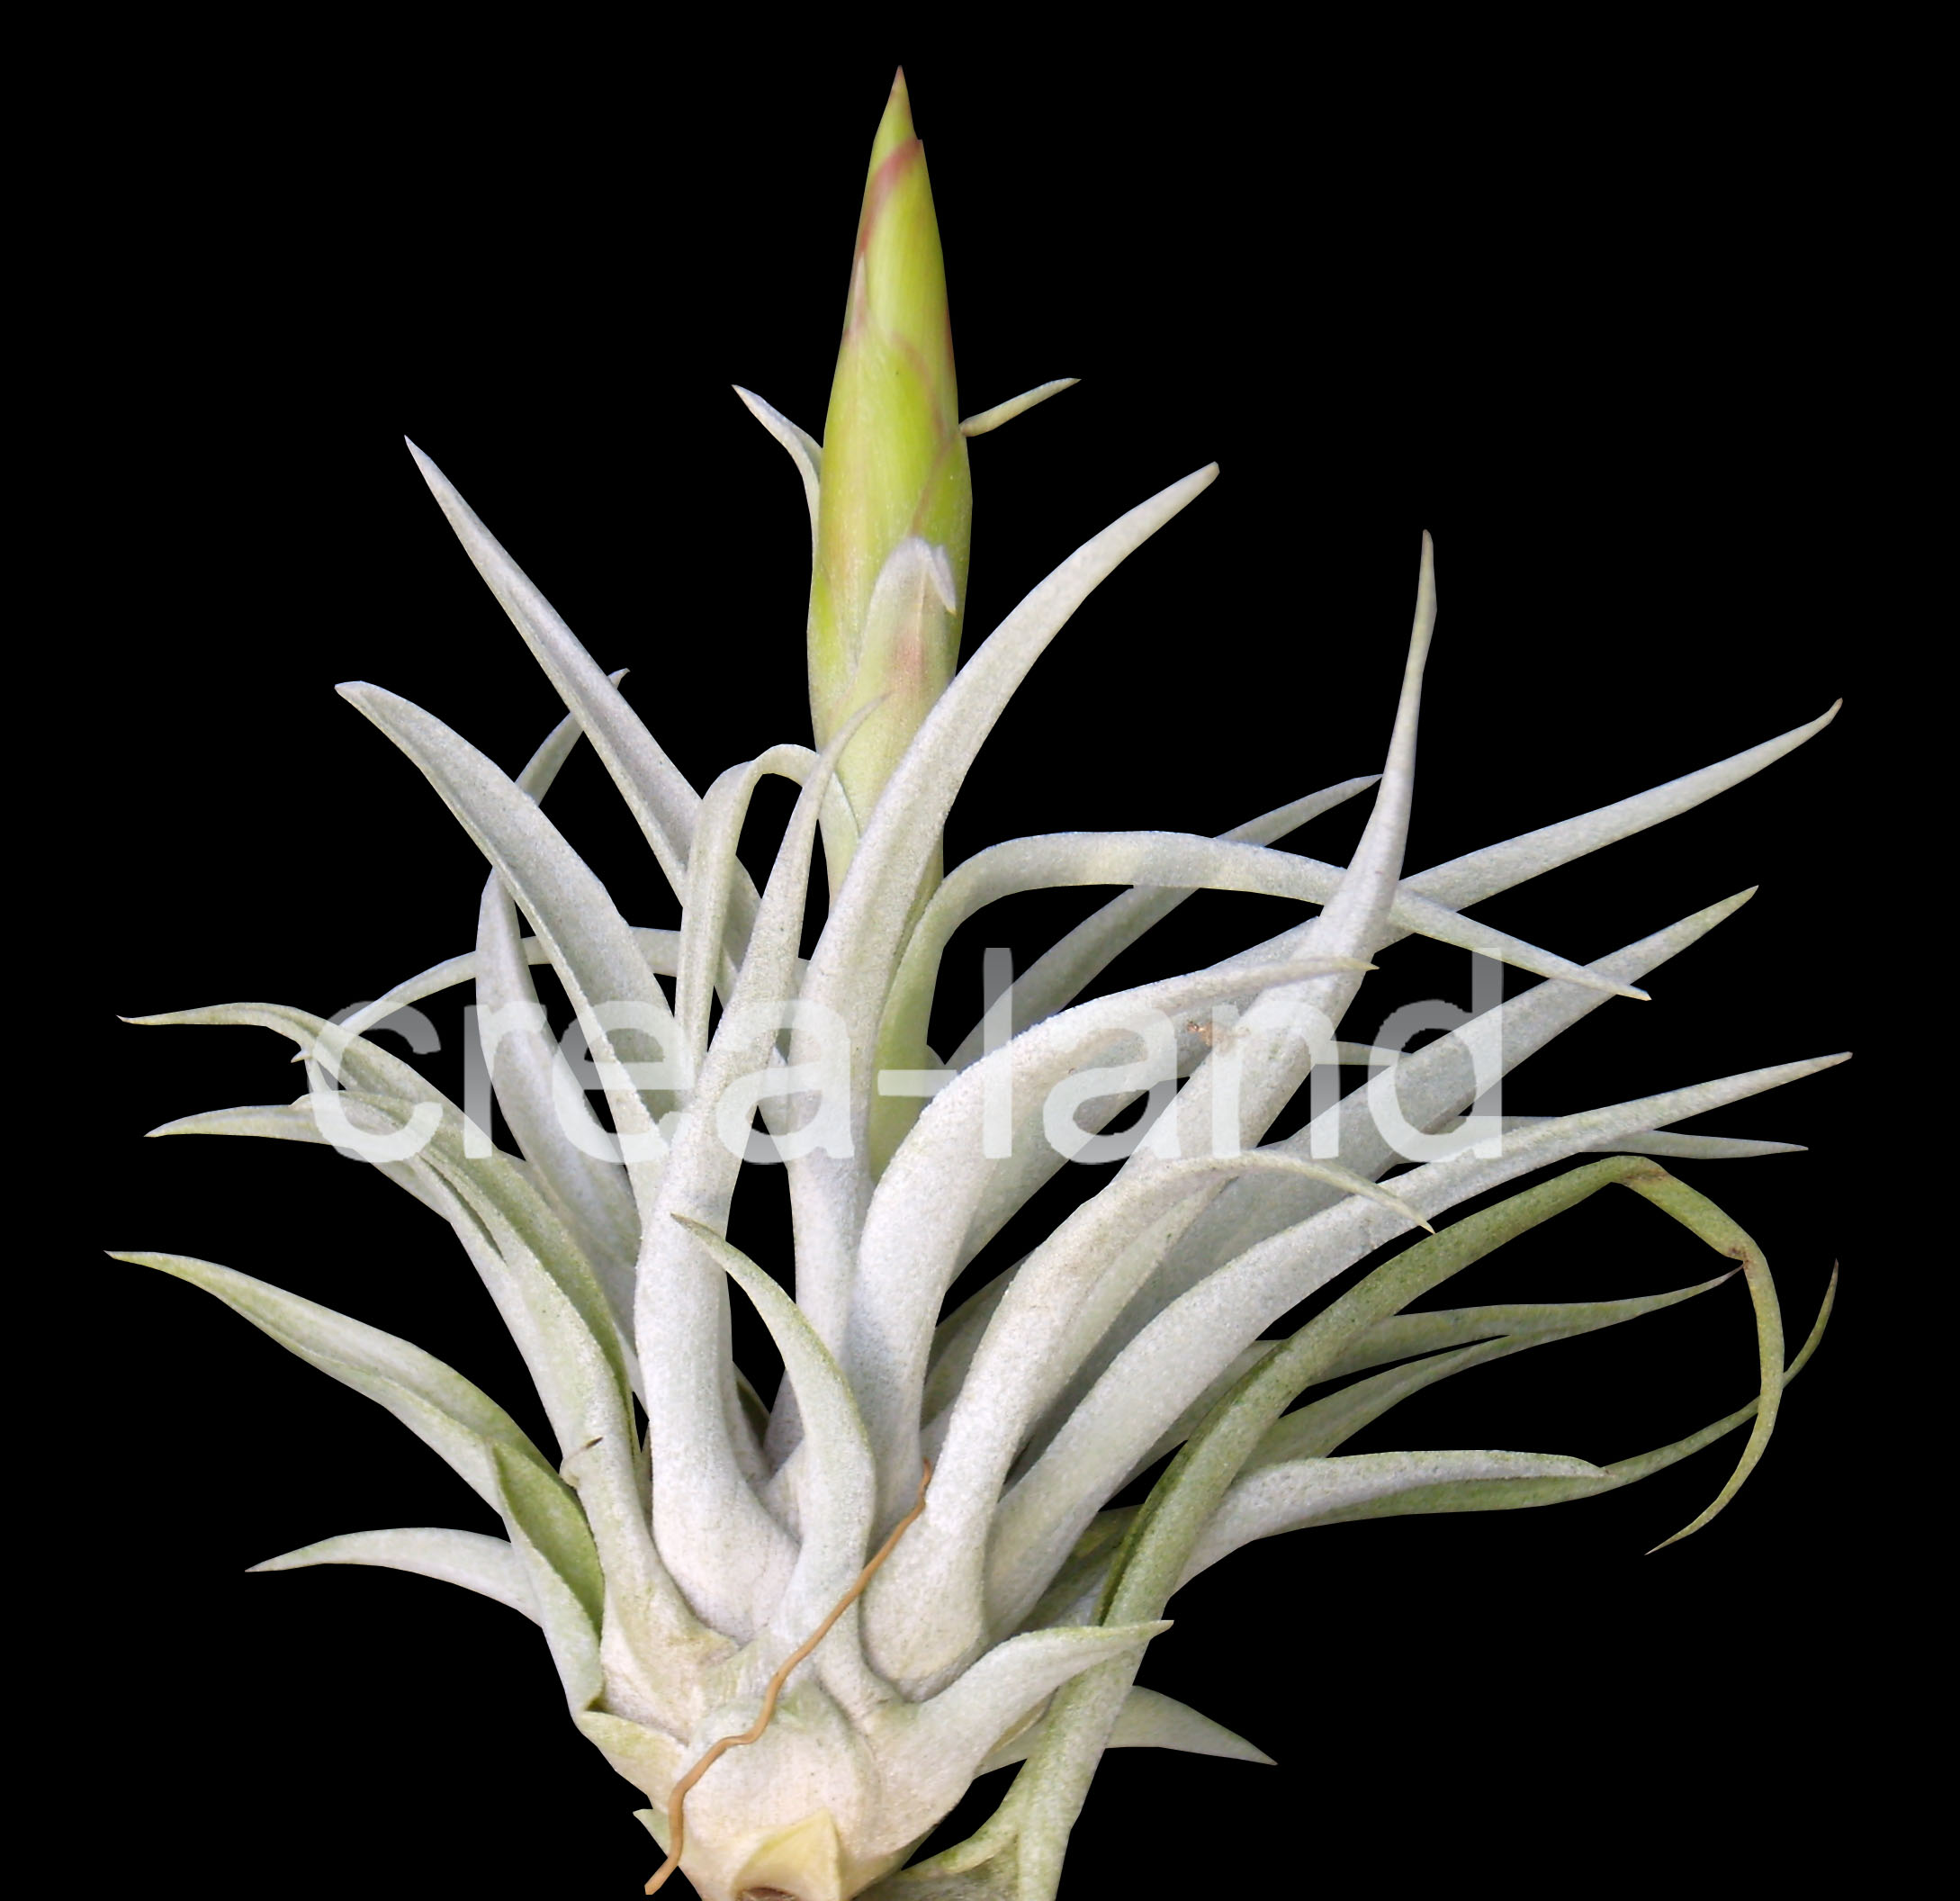 tillandsia plante sans terre jardinage var of plante sans terre. Black Bedroom Furniture Sets. Home Design Ideas